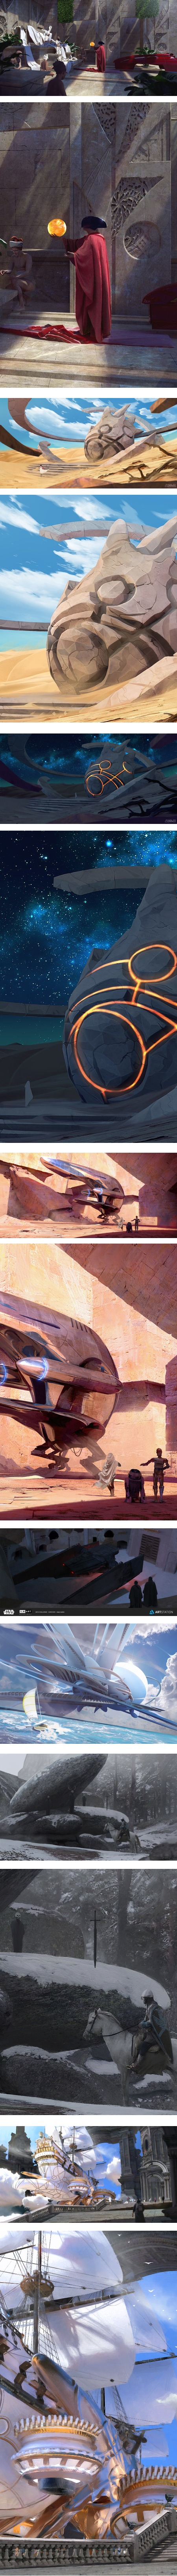 Pablo Carpio, concept art and illustration